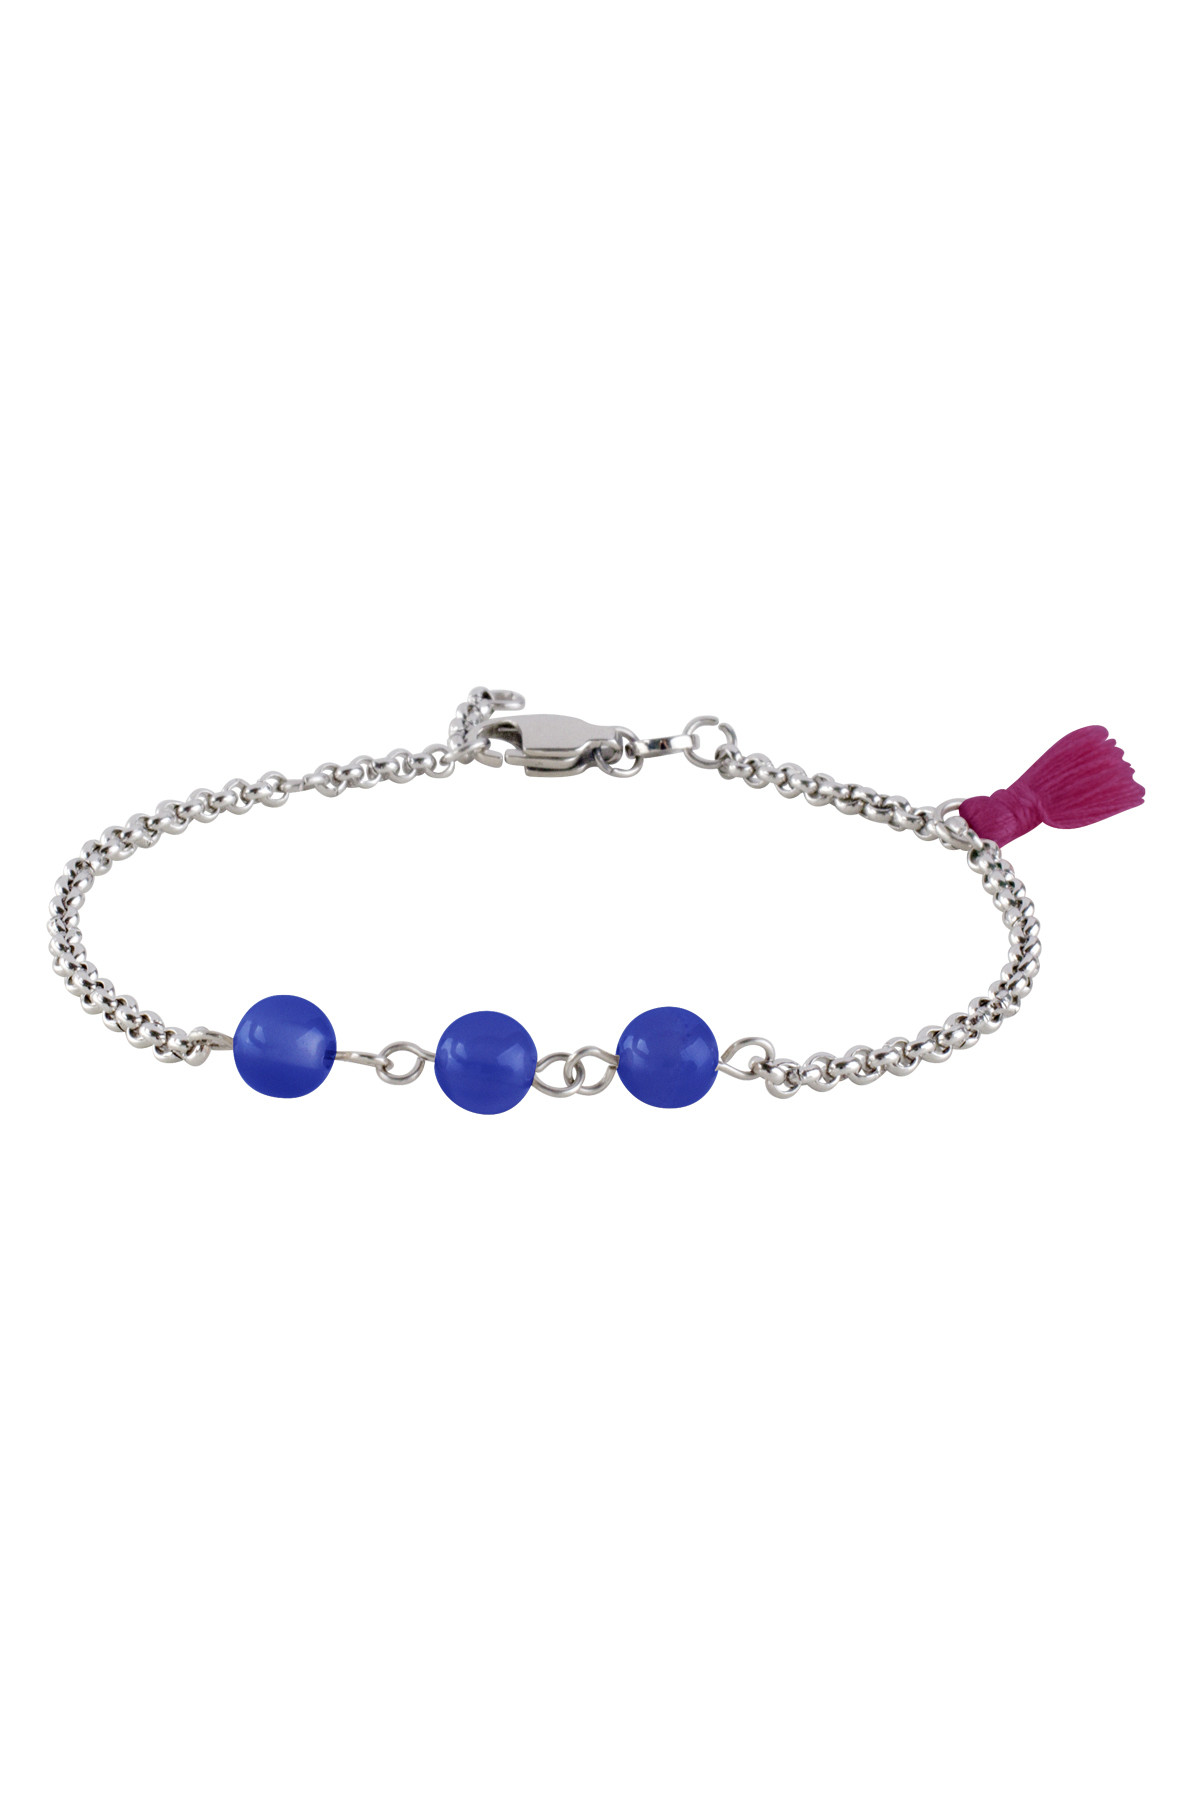 Image of   DYRBERG/KERN CALISTA ARMBÅND 351277 (Silver, Blue, ONESIZE)